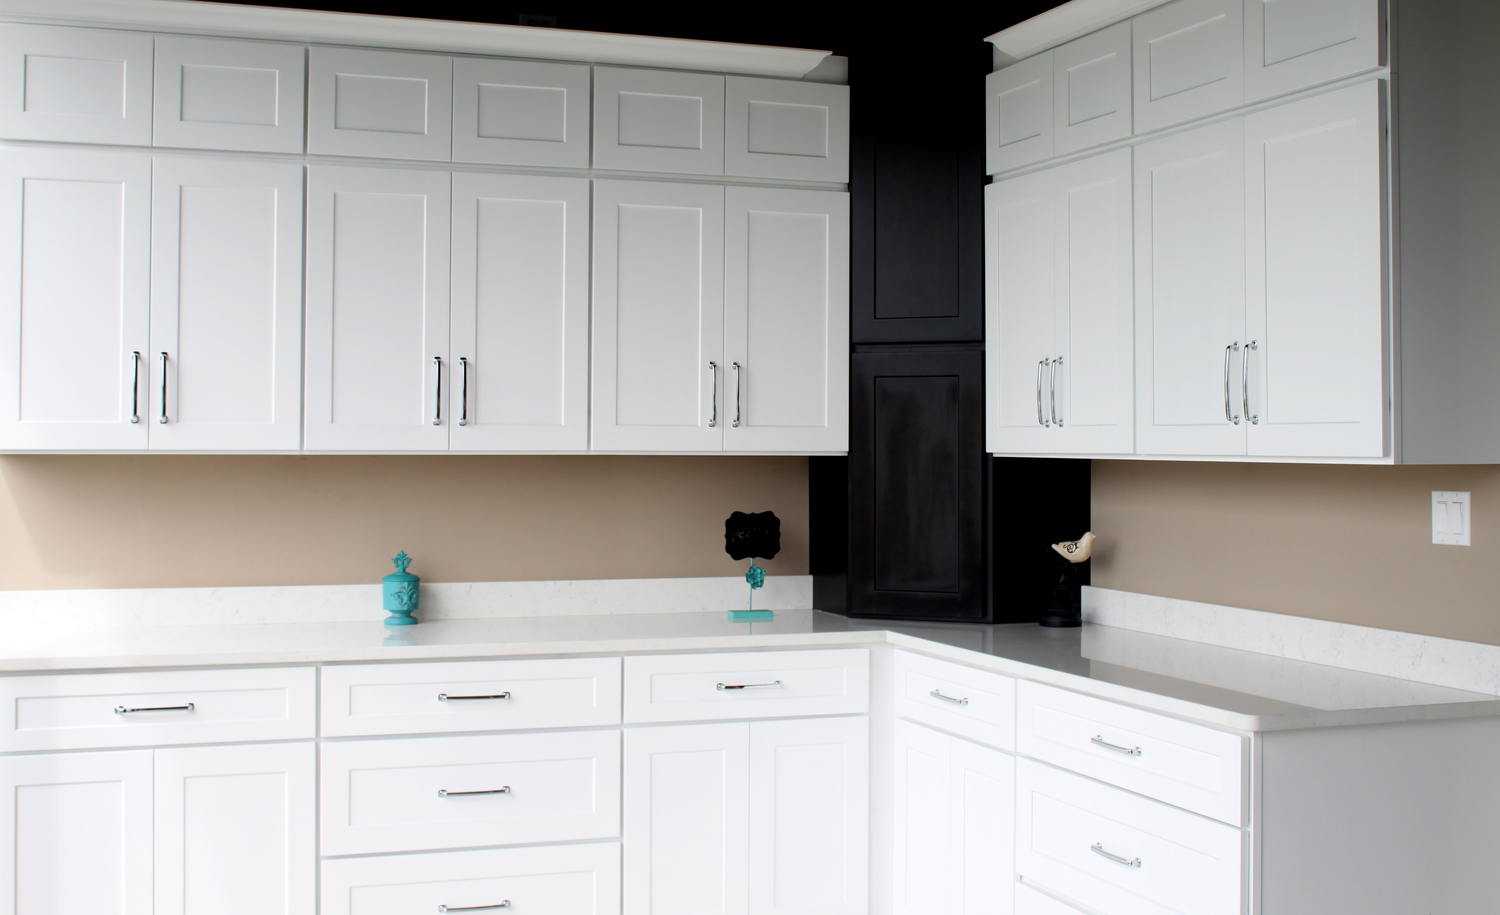 Whitney Kitchen Cabinets, Sinks and Countertops — Rock Counter